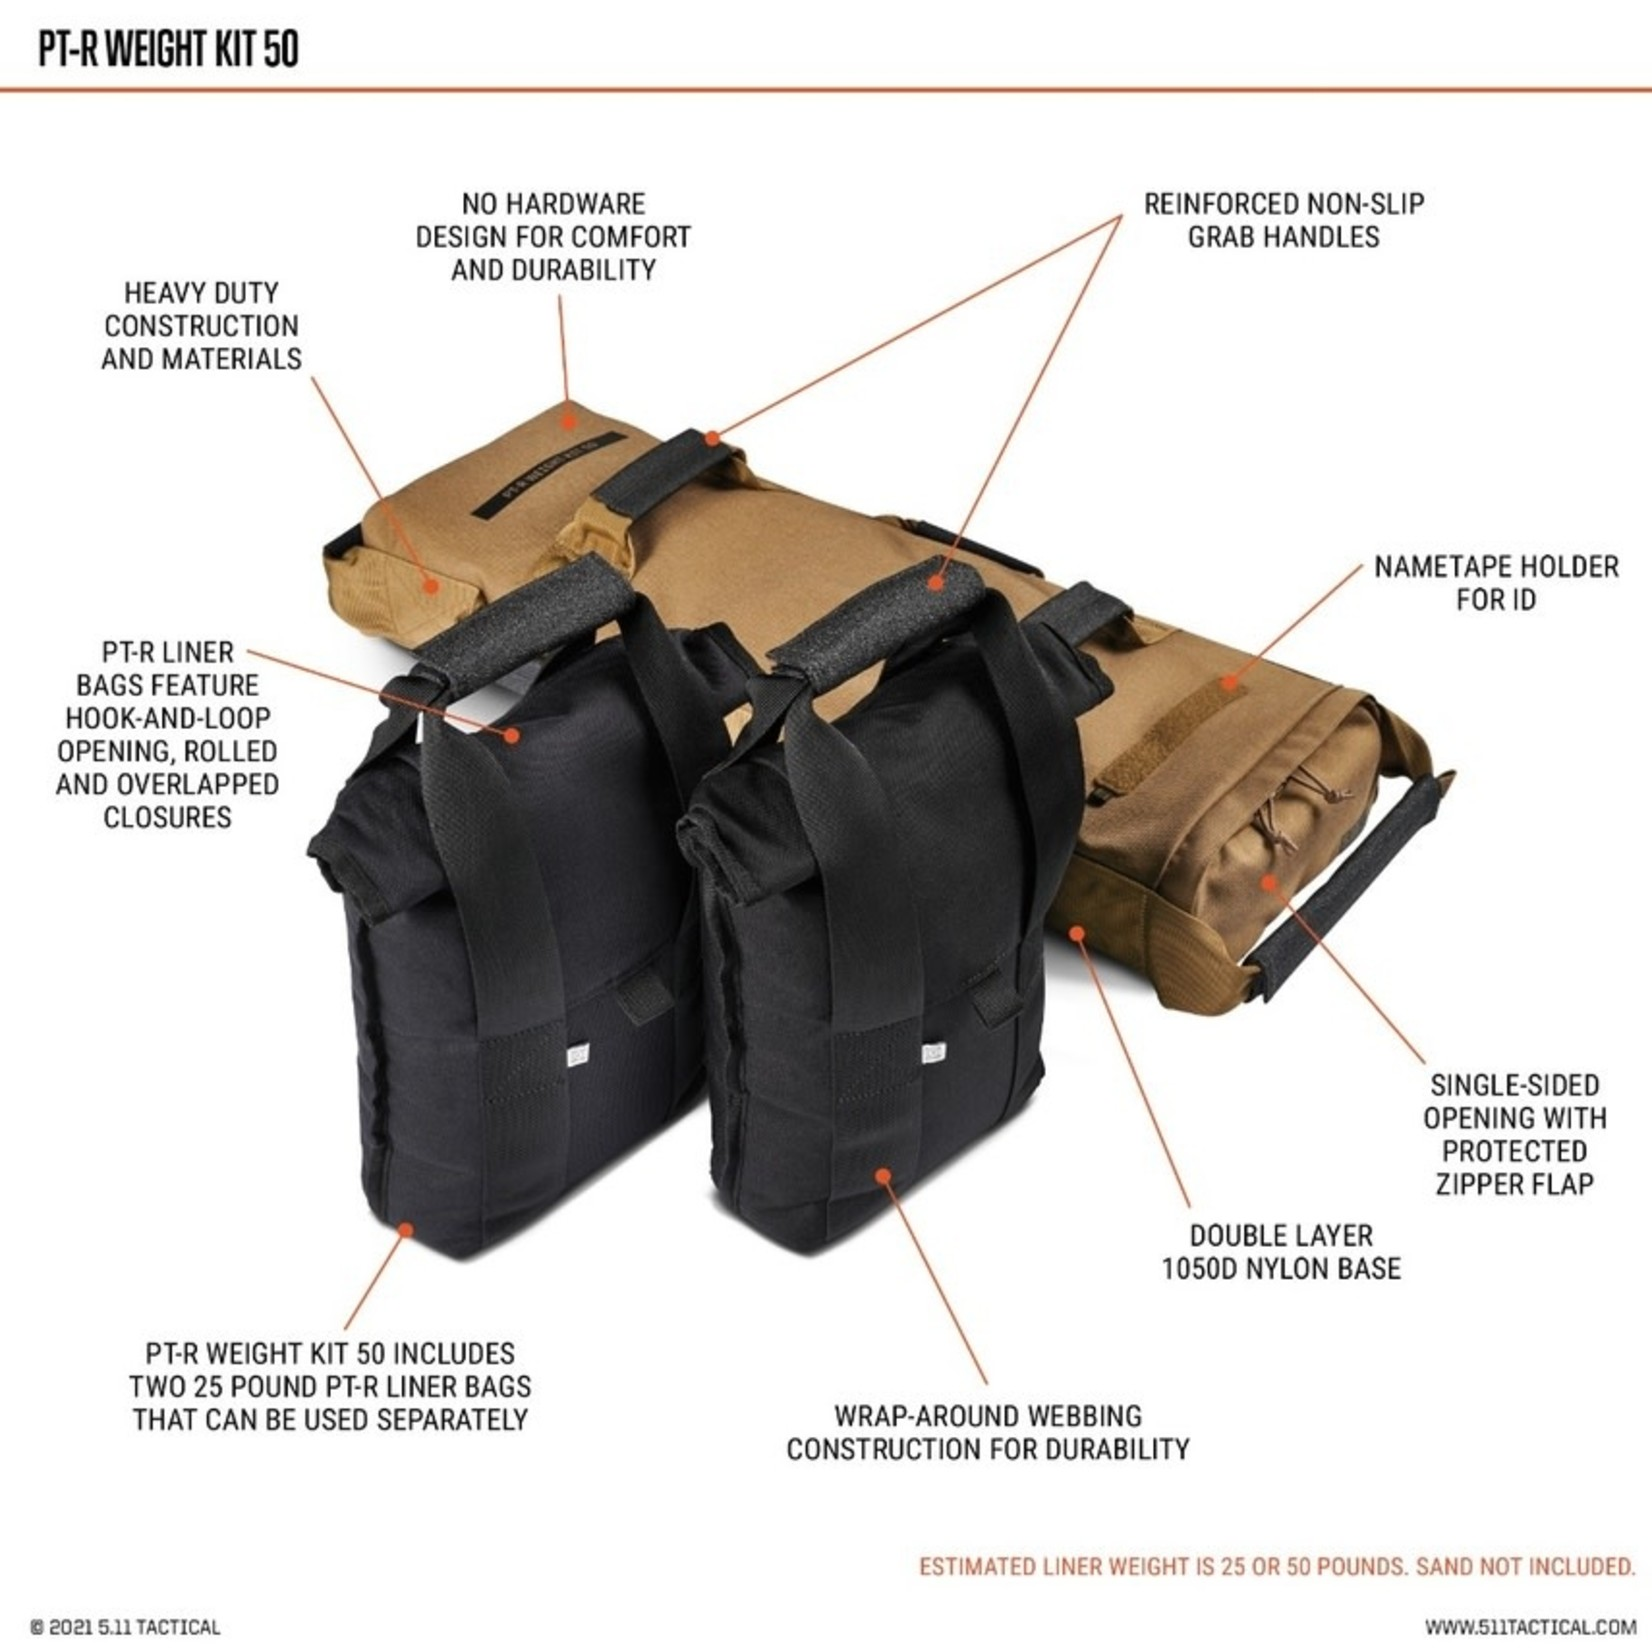 5.11 Tactical 5.11 PT-R Weight Kit 50;bs